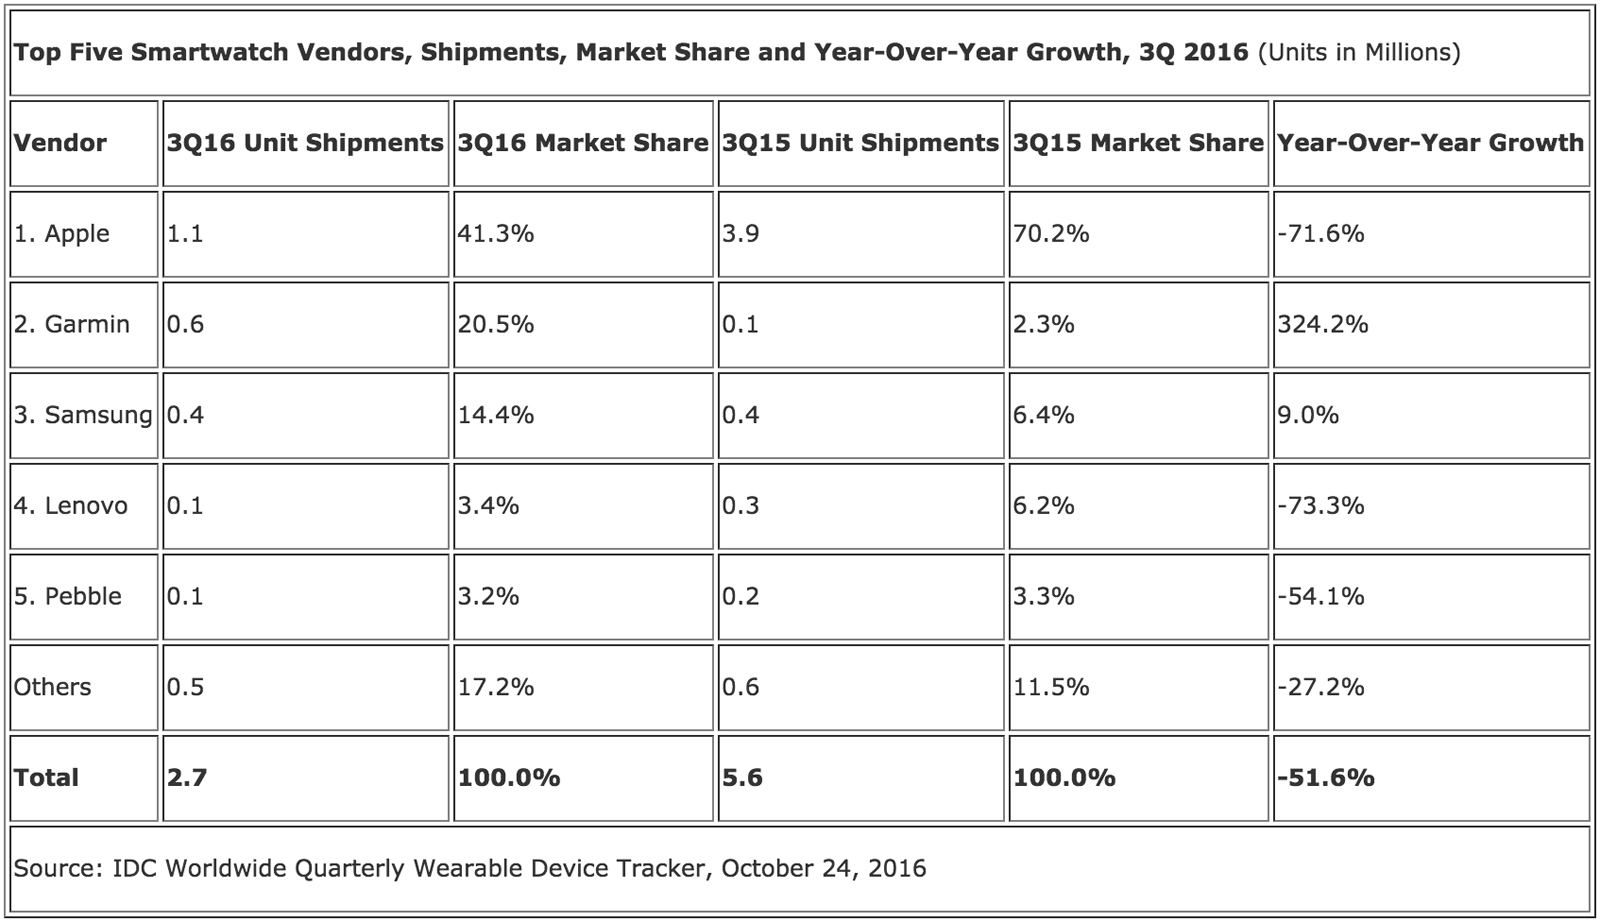 IDC's smartwatch market share estimates for Q3 2016